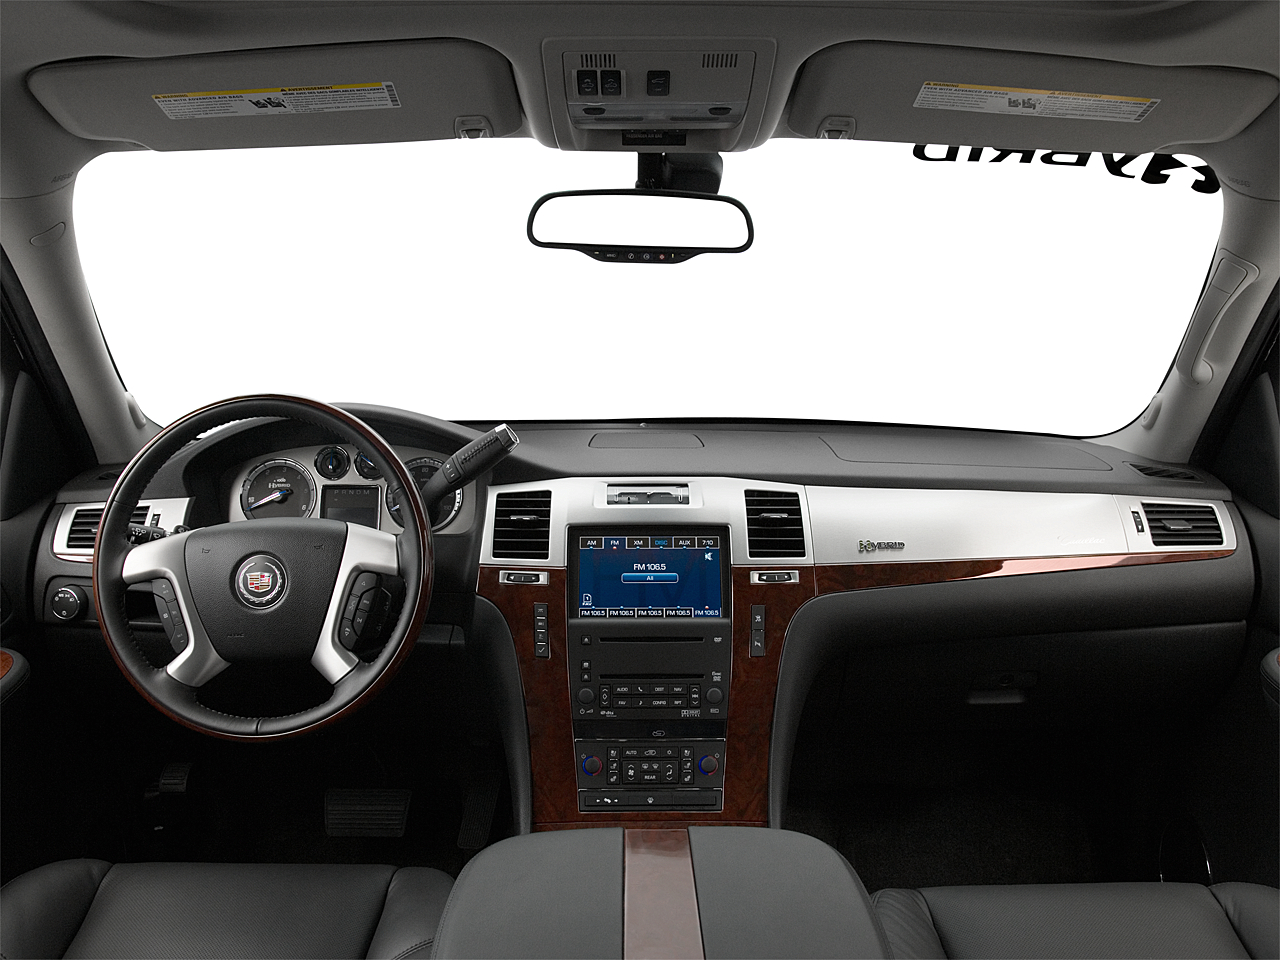 2009 Cadillac Escalade Hybrid, centered wide dash shot